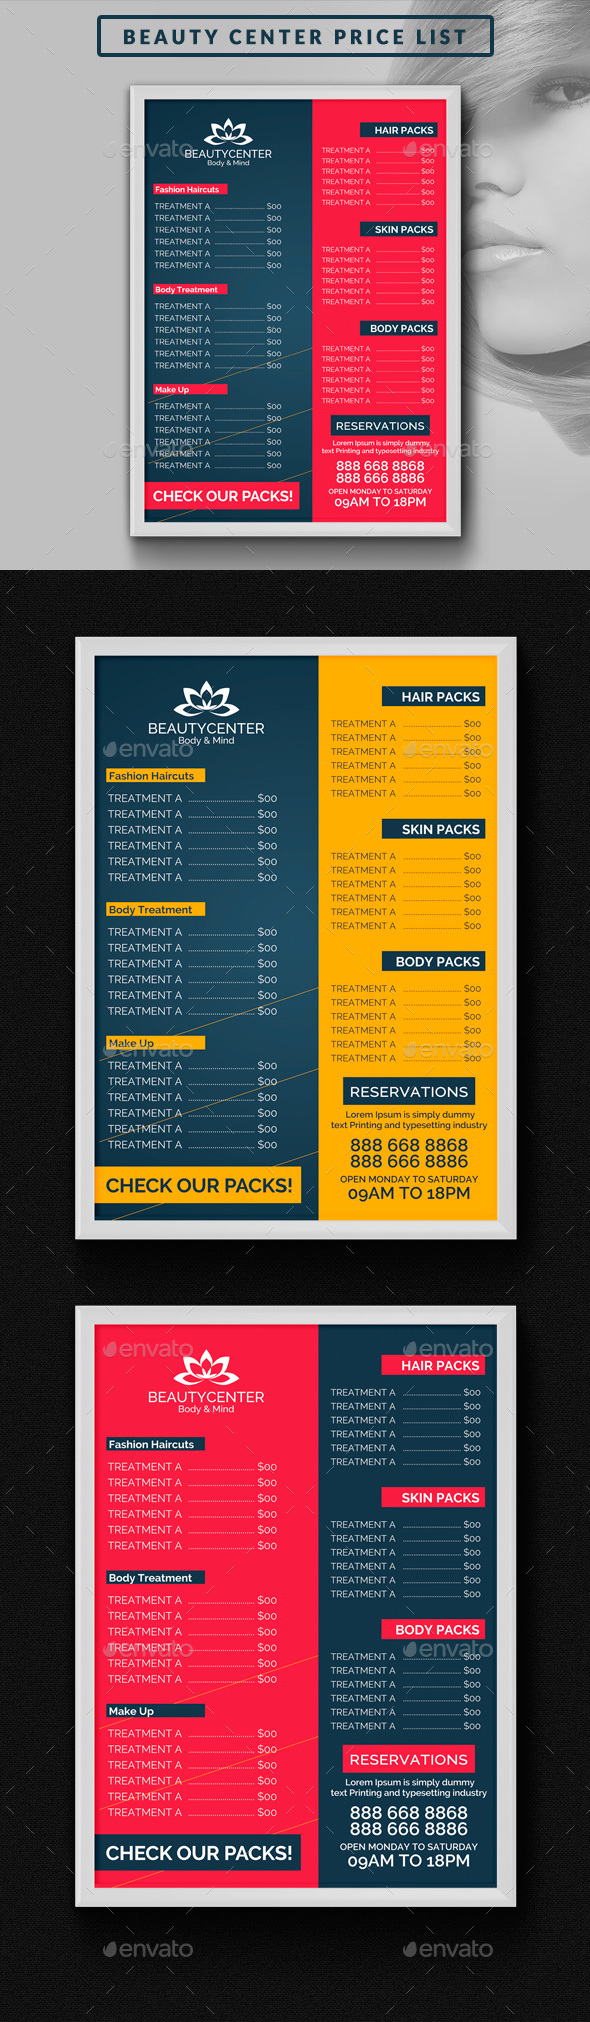 Beauty Center Price List Template   Miscellaneous Print Templates